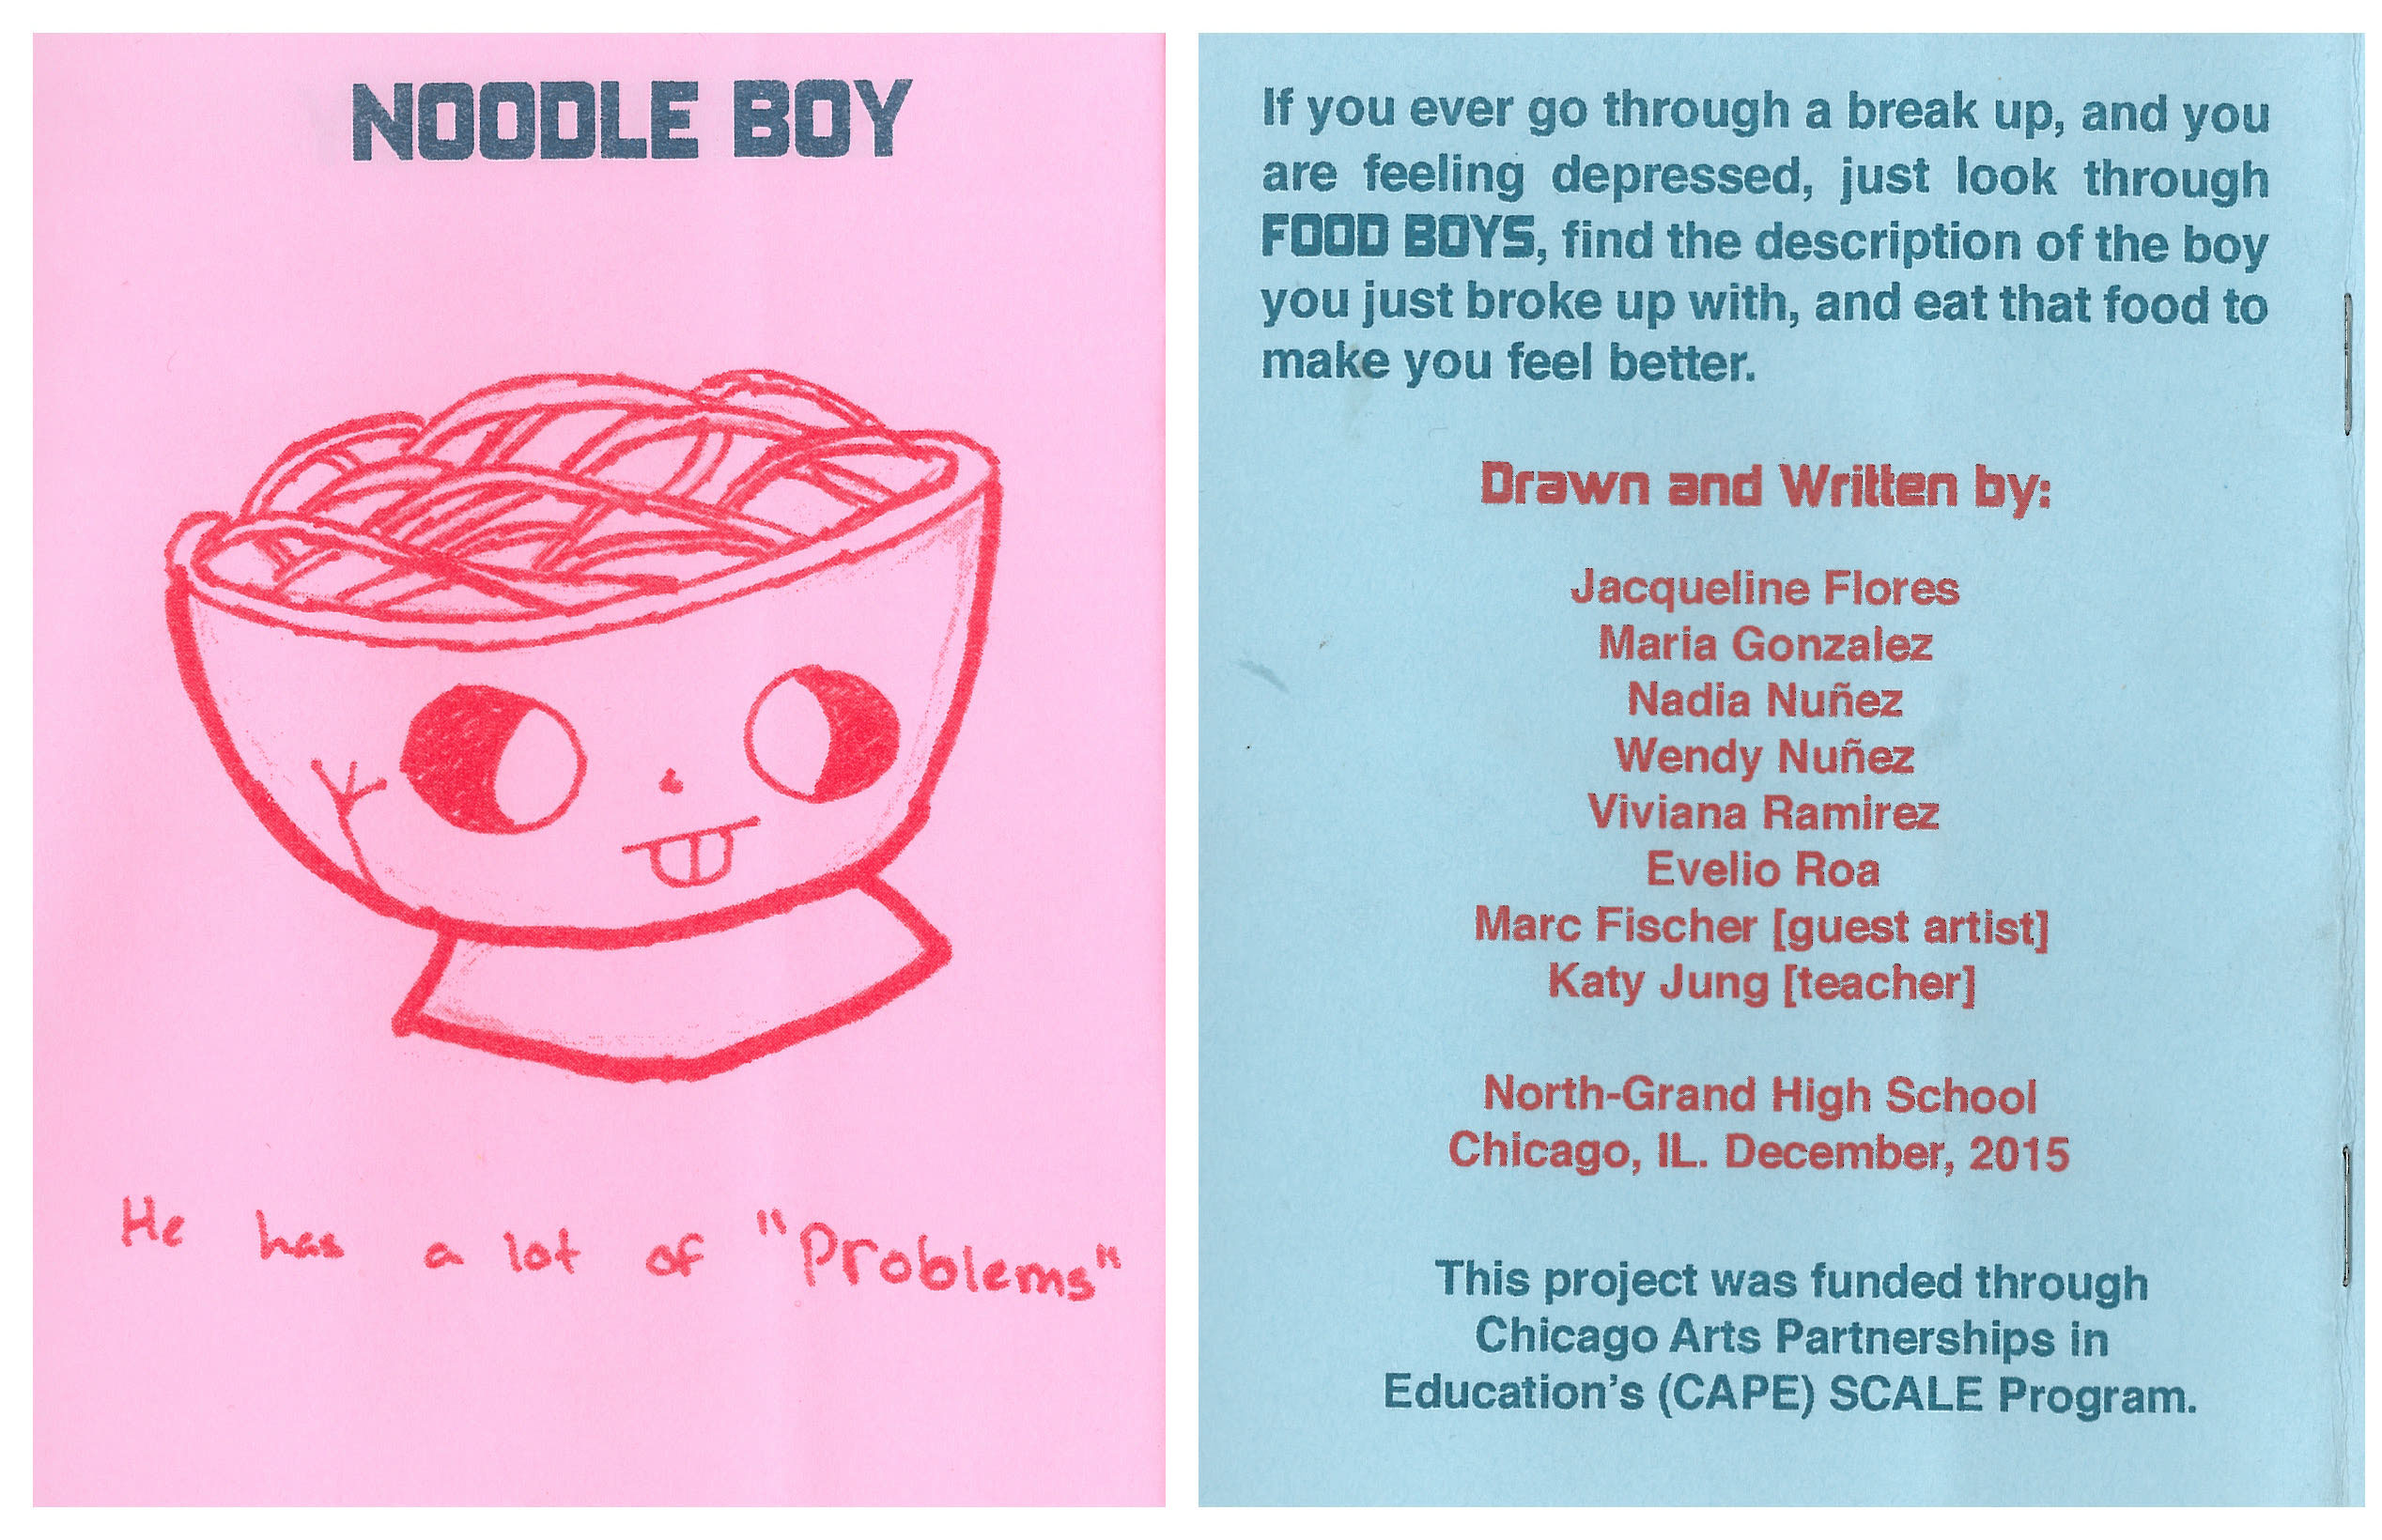 'Food Boys' advises eating noodles to get over a boy who has a lot of 'problems.'